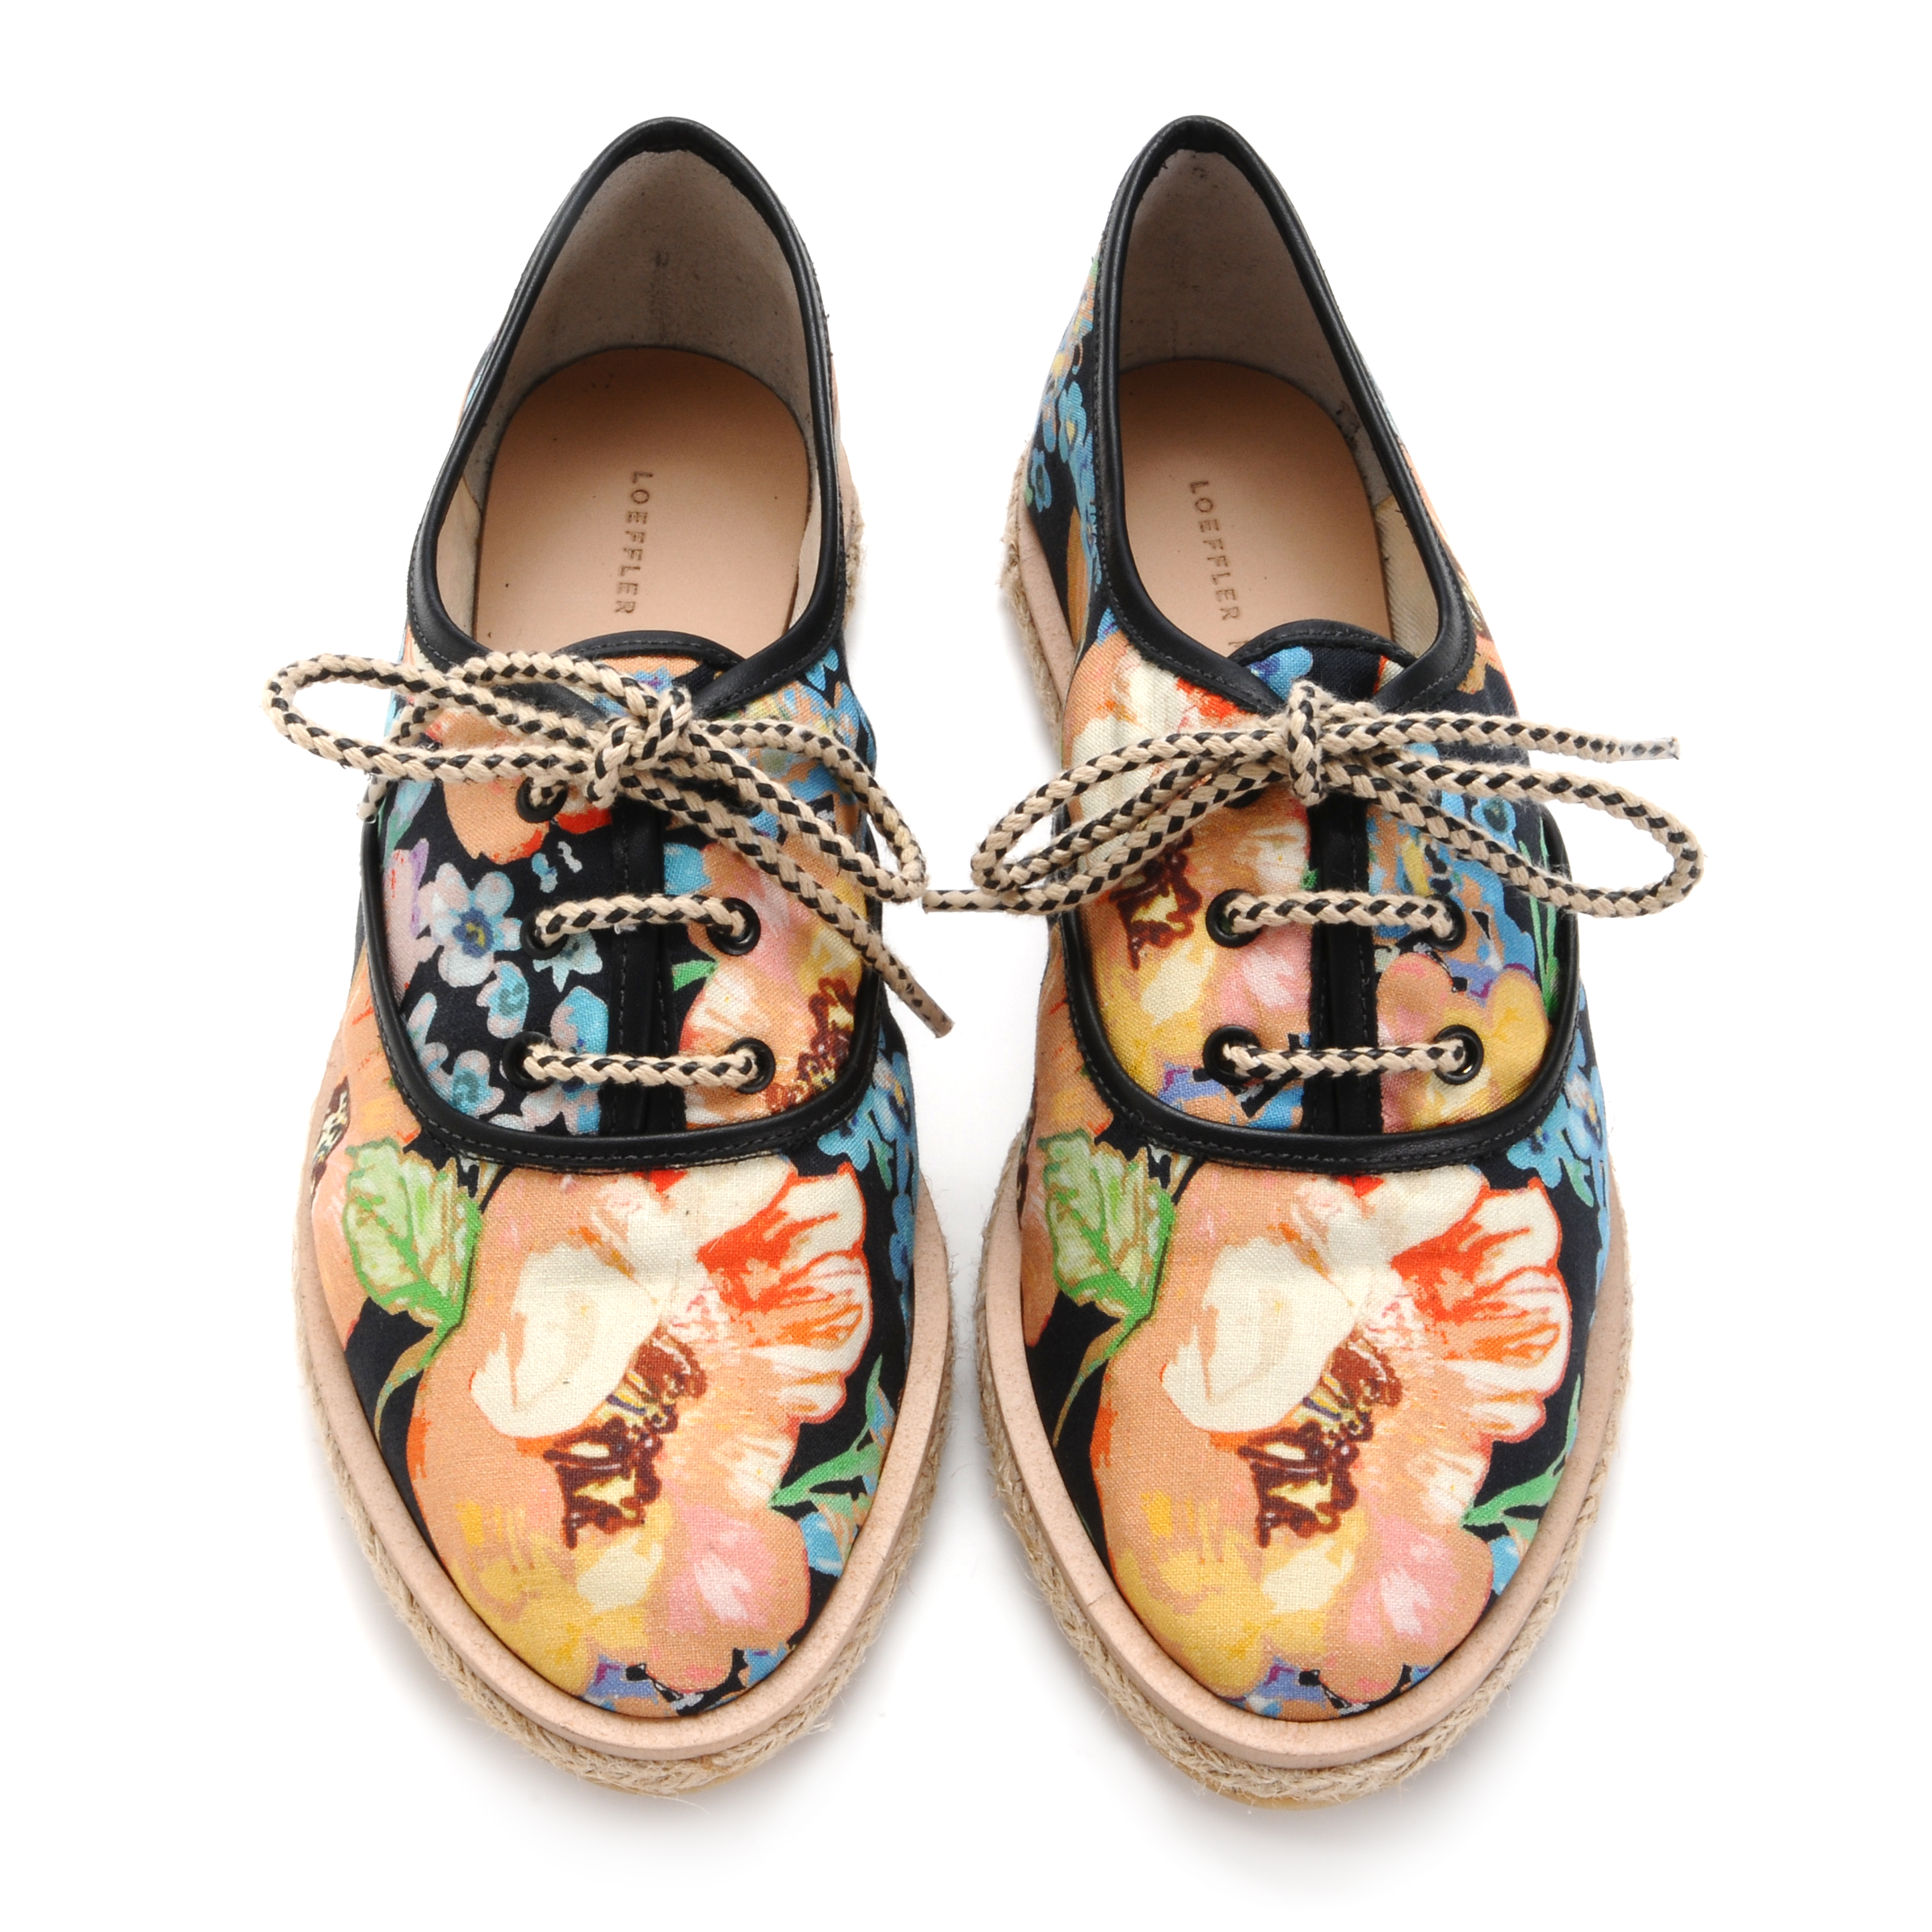 SHOPBOP - Loeffler Randall FASTEST FREE SHIPPING WORLDWIDE on Loeffler Randall & FREE EASY RETURNS. hidden honeypot link. Shop Men's Shop Men's Fashion at Items in your Shopbop cart will move with you. So, she launched Loeffler Randall with her husband, Brian Murphy, in